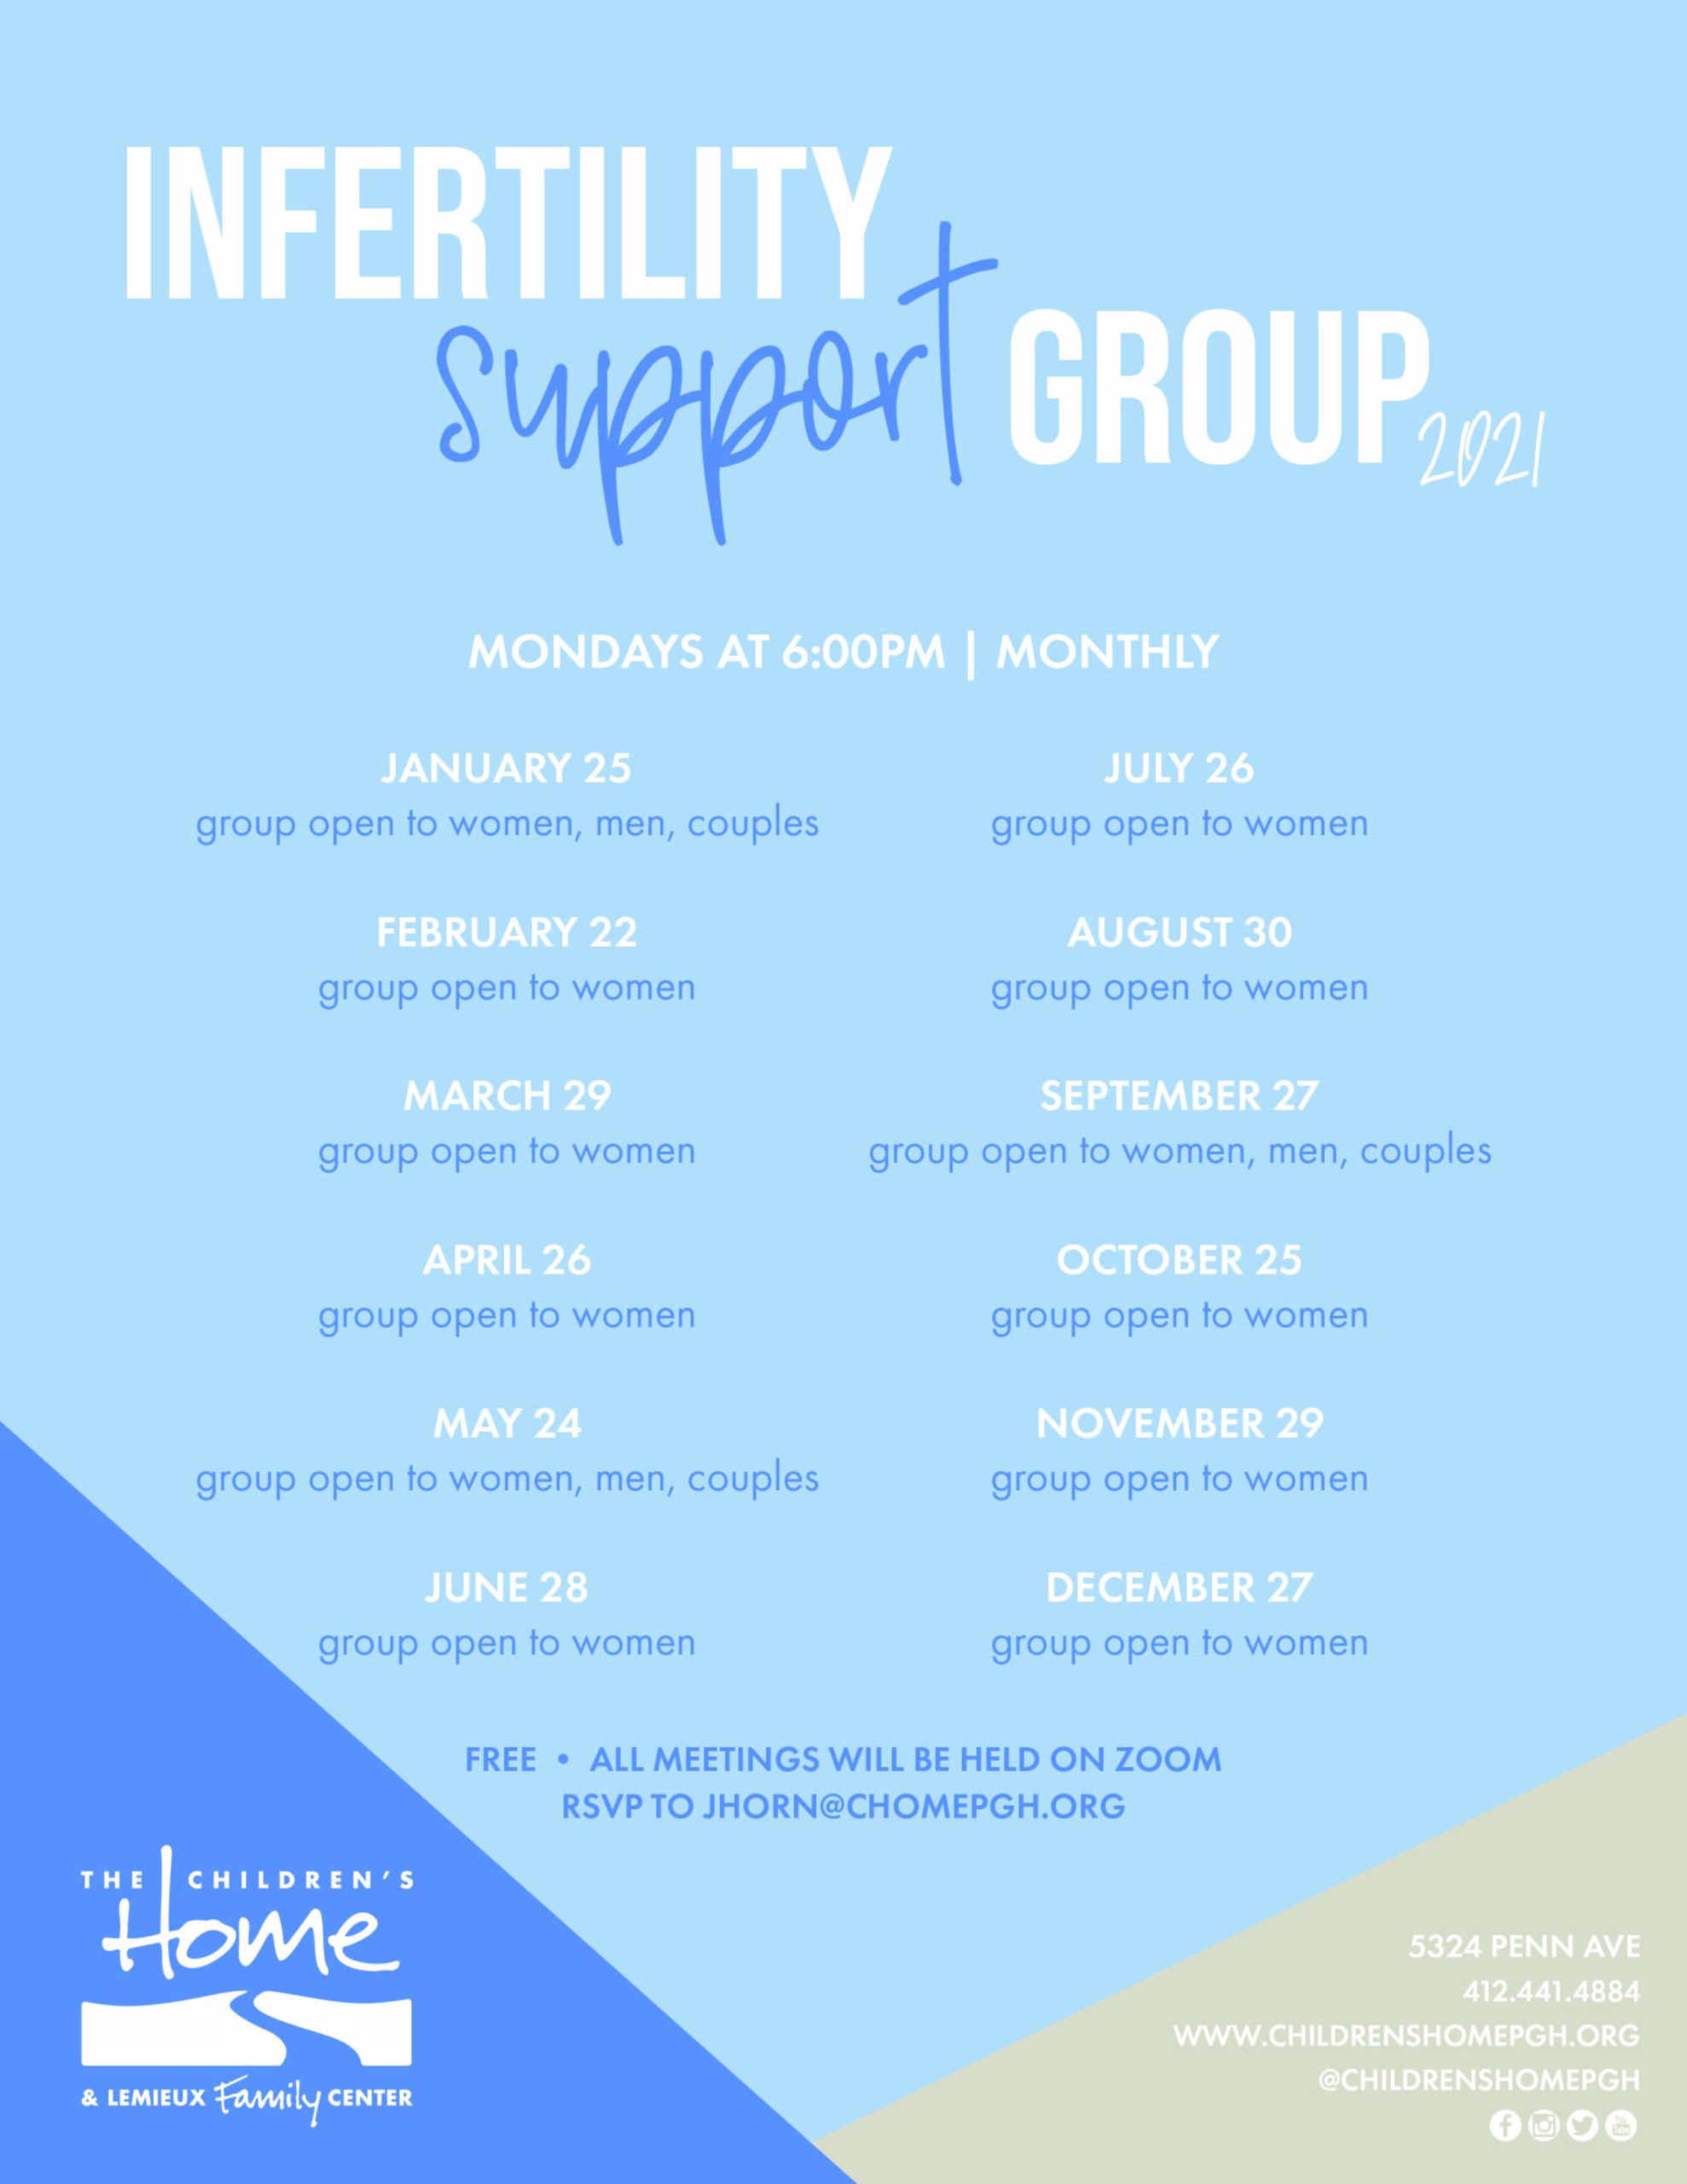 Infertility Support Group 2021-Flyer